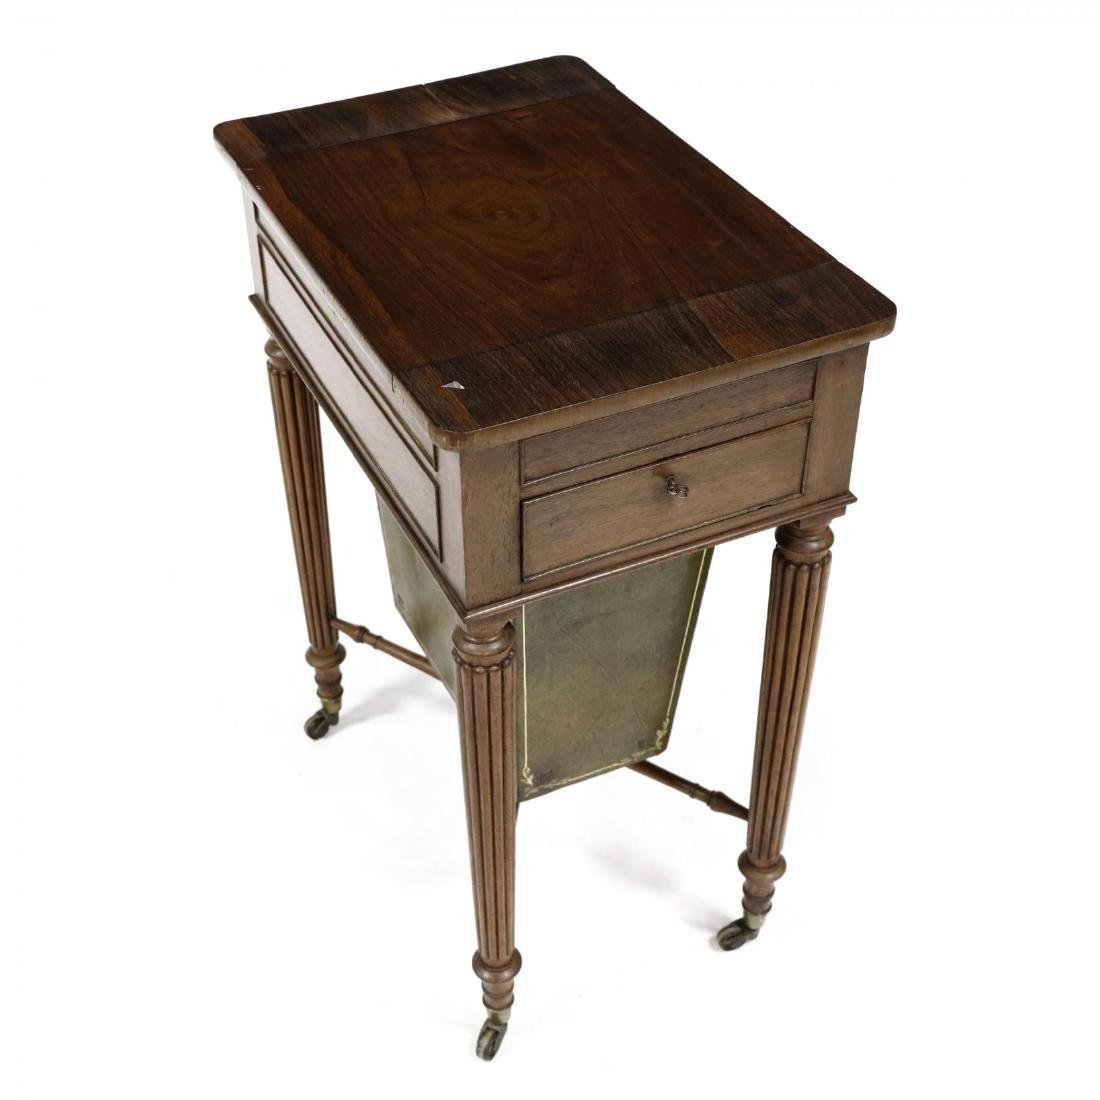 William IV Rosewood Games Table - 2